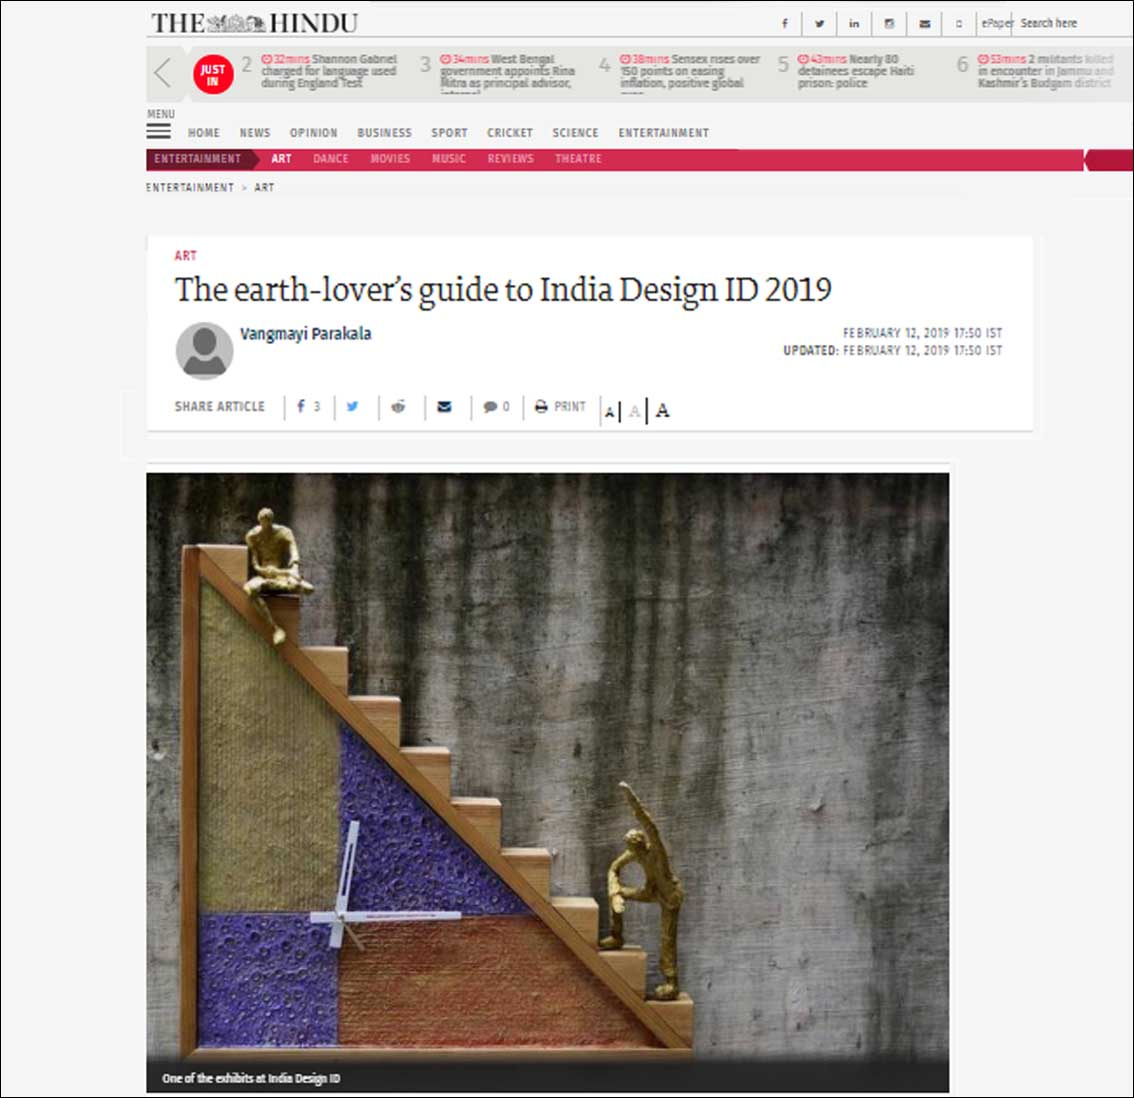 The earth - lover's guide to India Design ID 2019 - The Hindu - February 2019